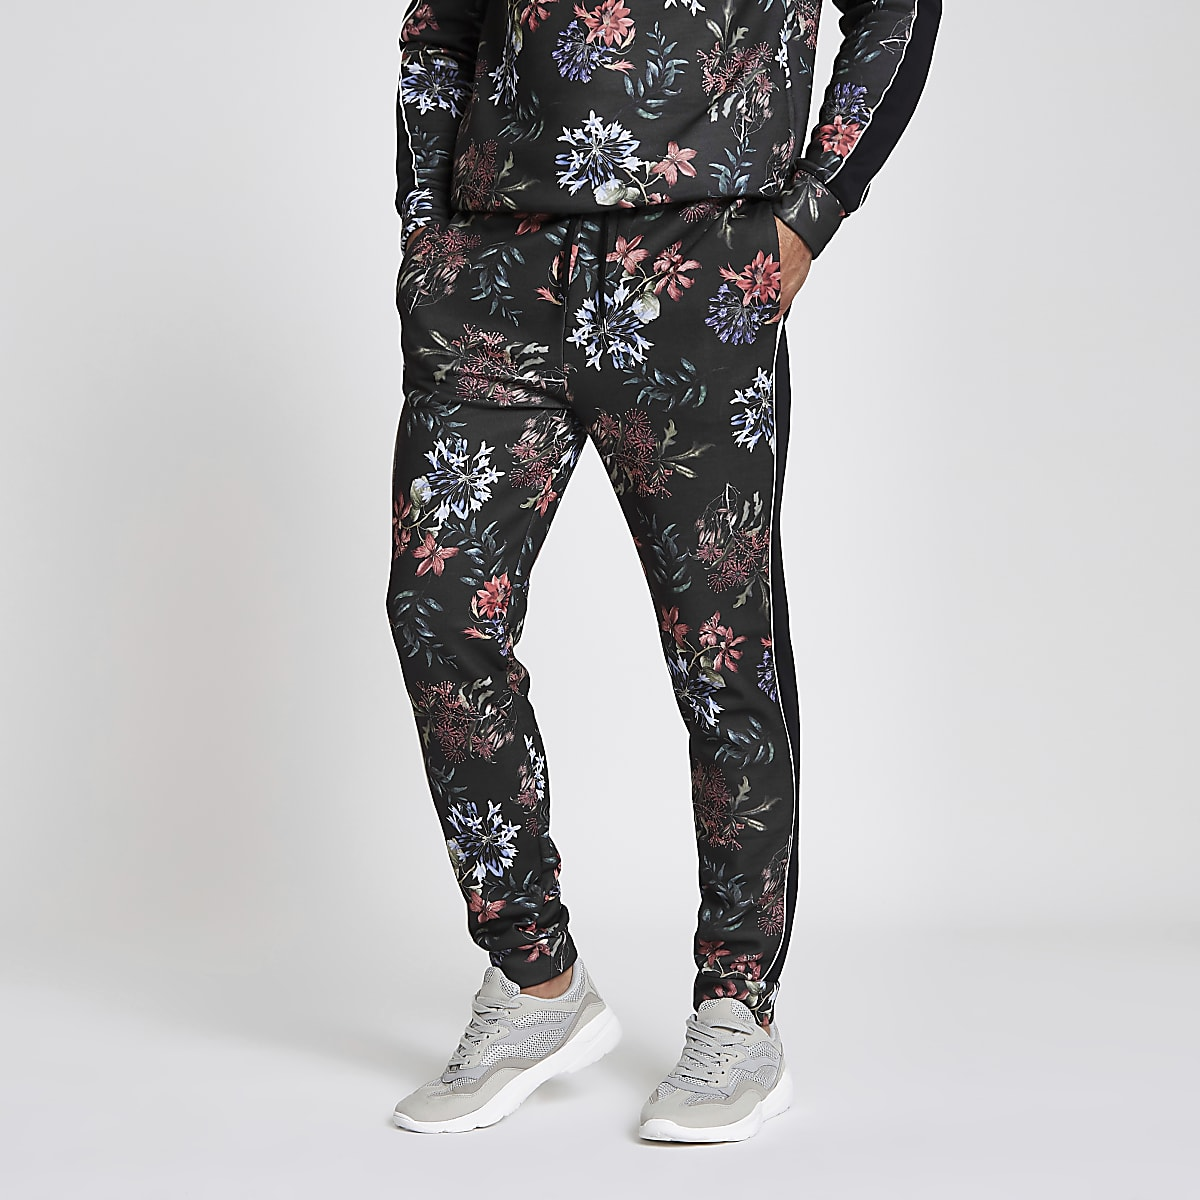 Zwarte slim-fit joggingbroek met bloemenprint en biezen